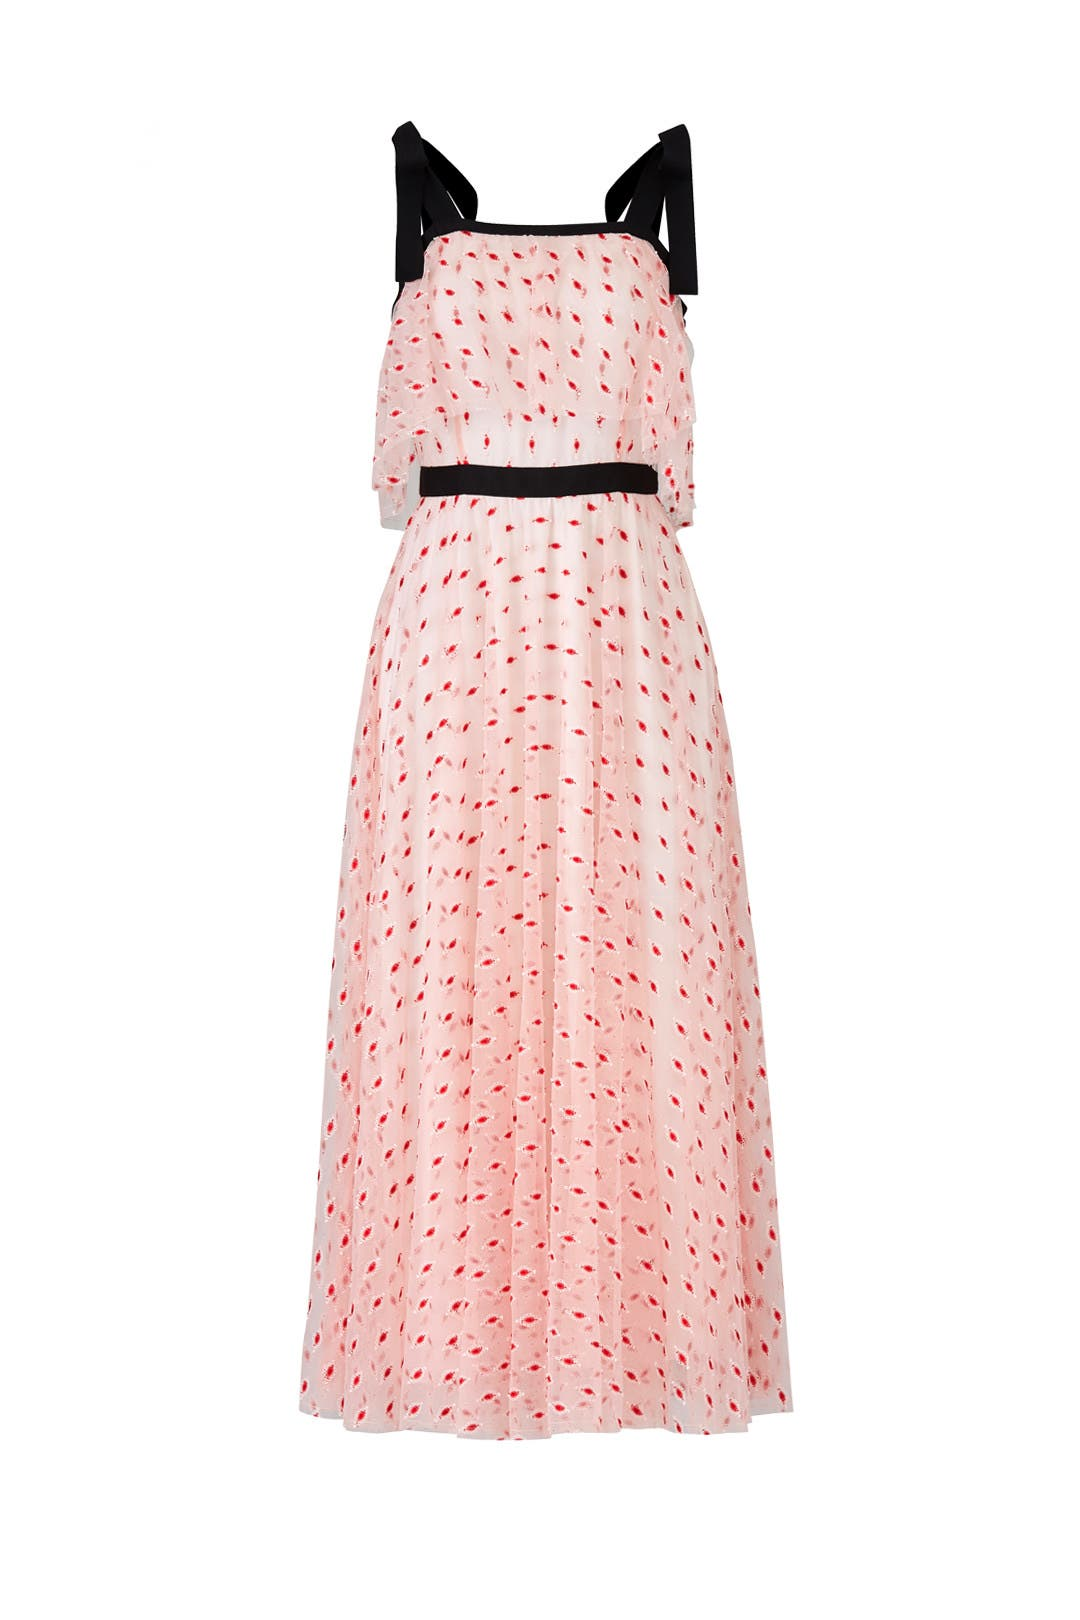 d1cd1a6570e1 Pleated Pink Midi Dress by Philosophy di Lorenzo Serafini for $145 ...